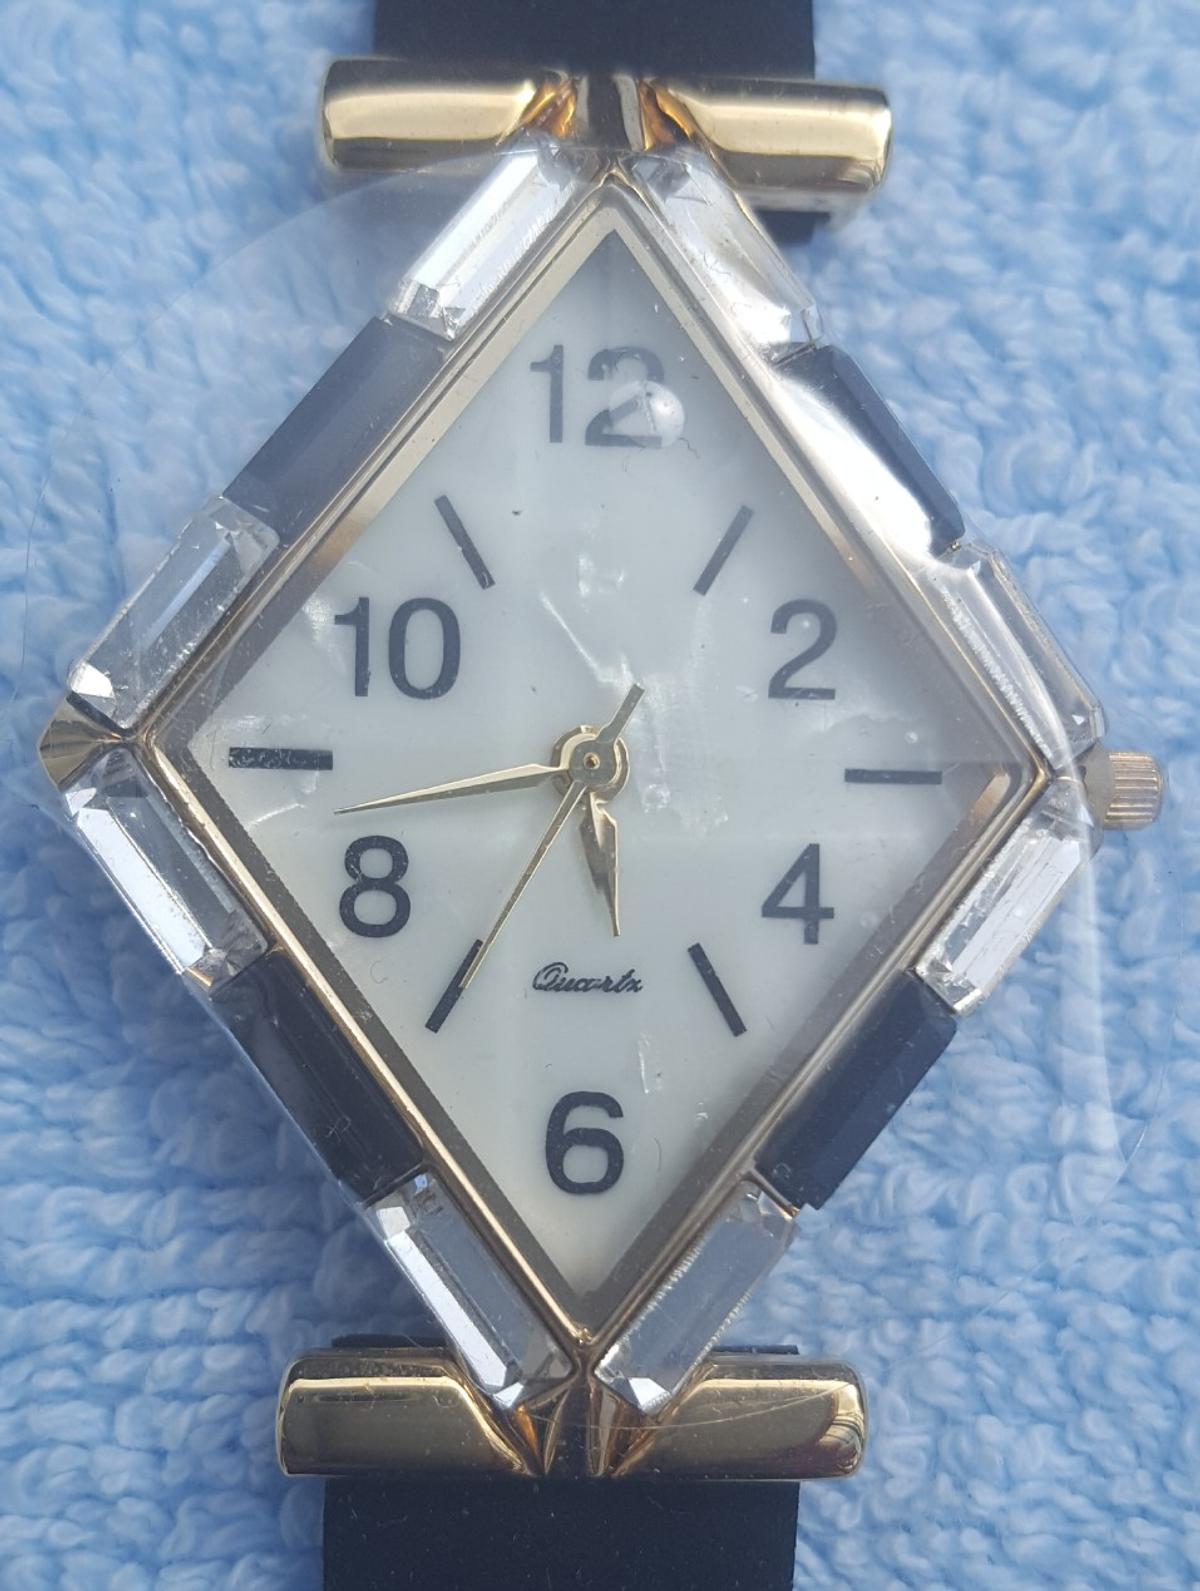 New Le Chat Chateau Art Deco Style Watch In Rm6 Dagenham For 35 99 For Sale Shpock